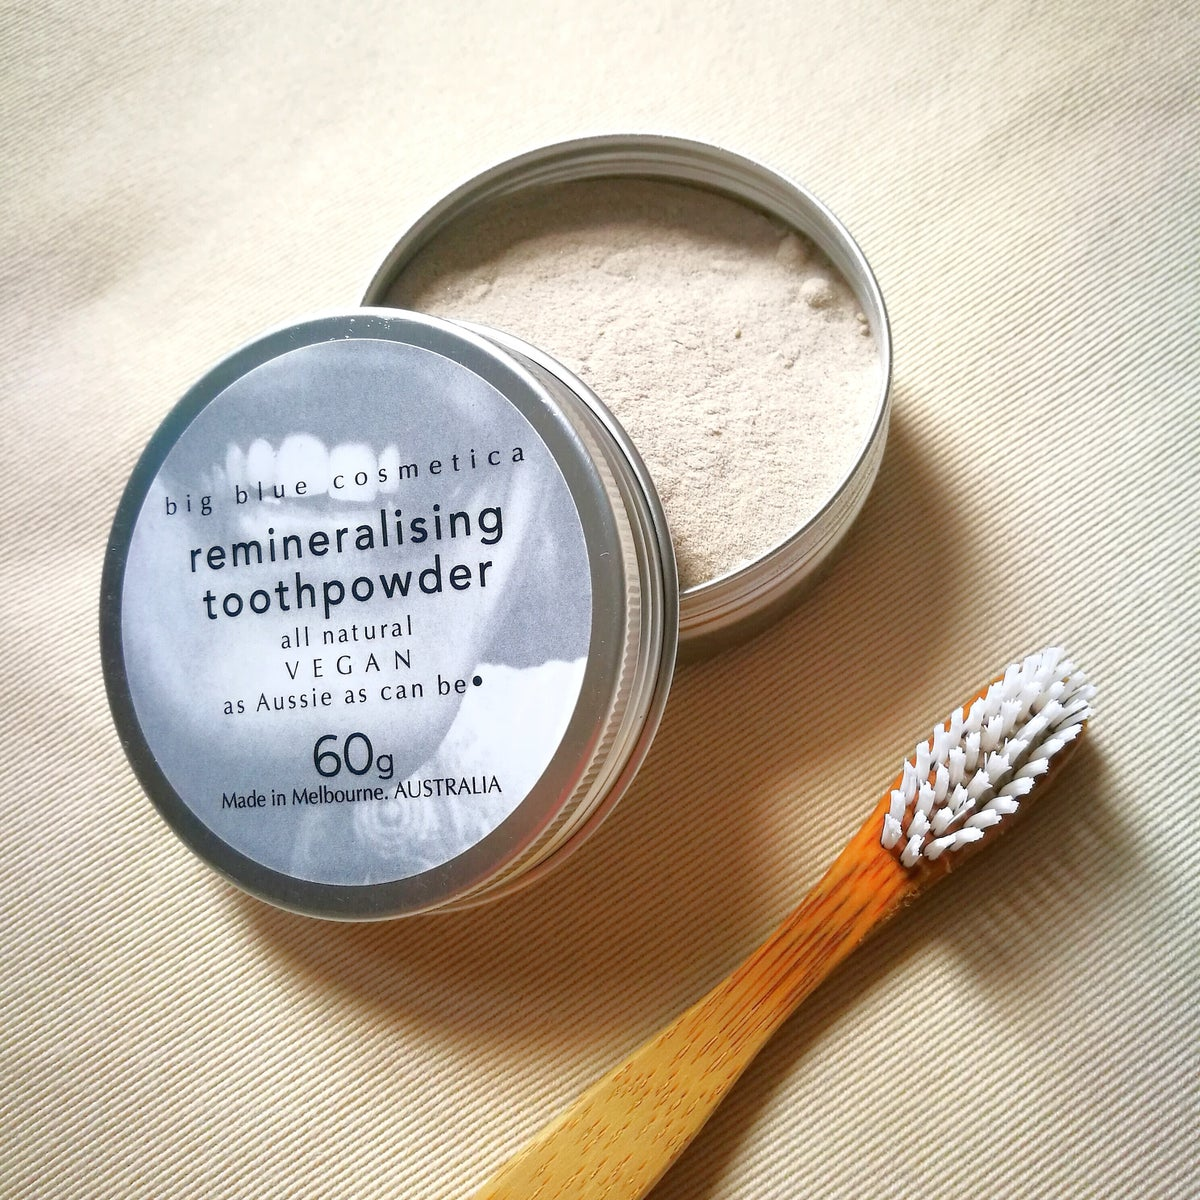 Image of remineralising toothpowder